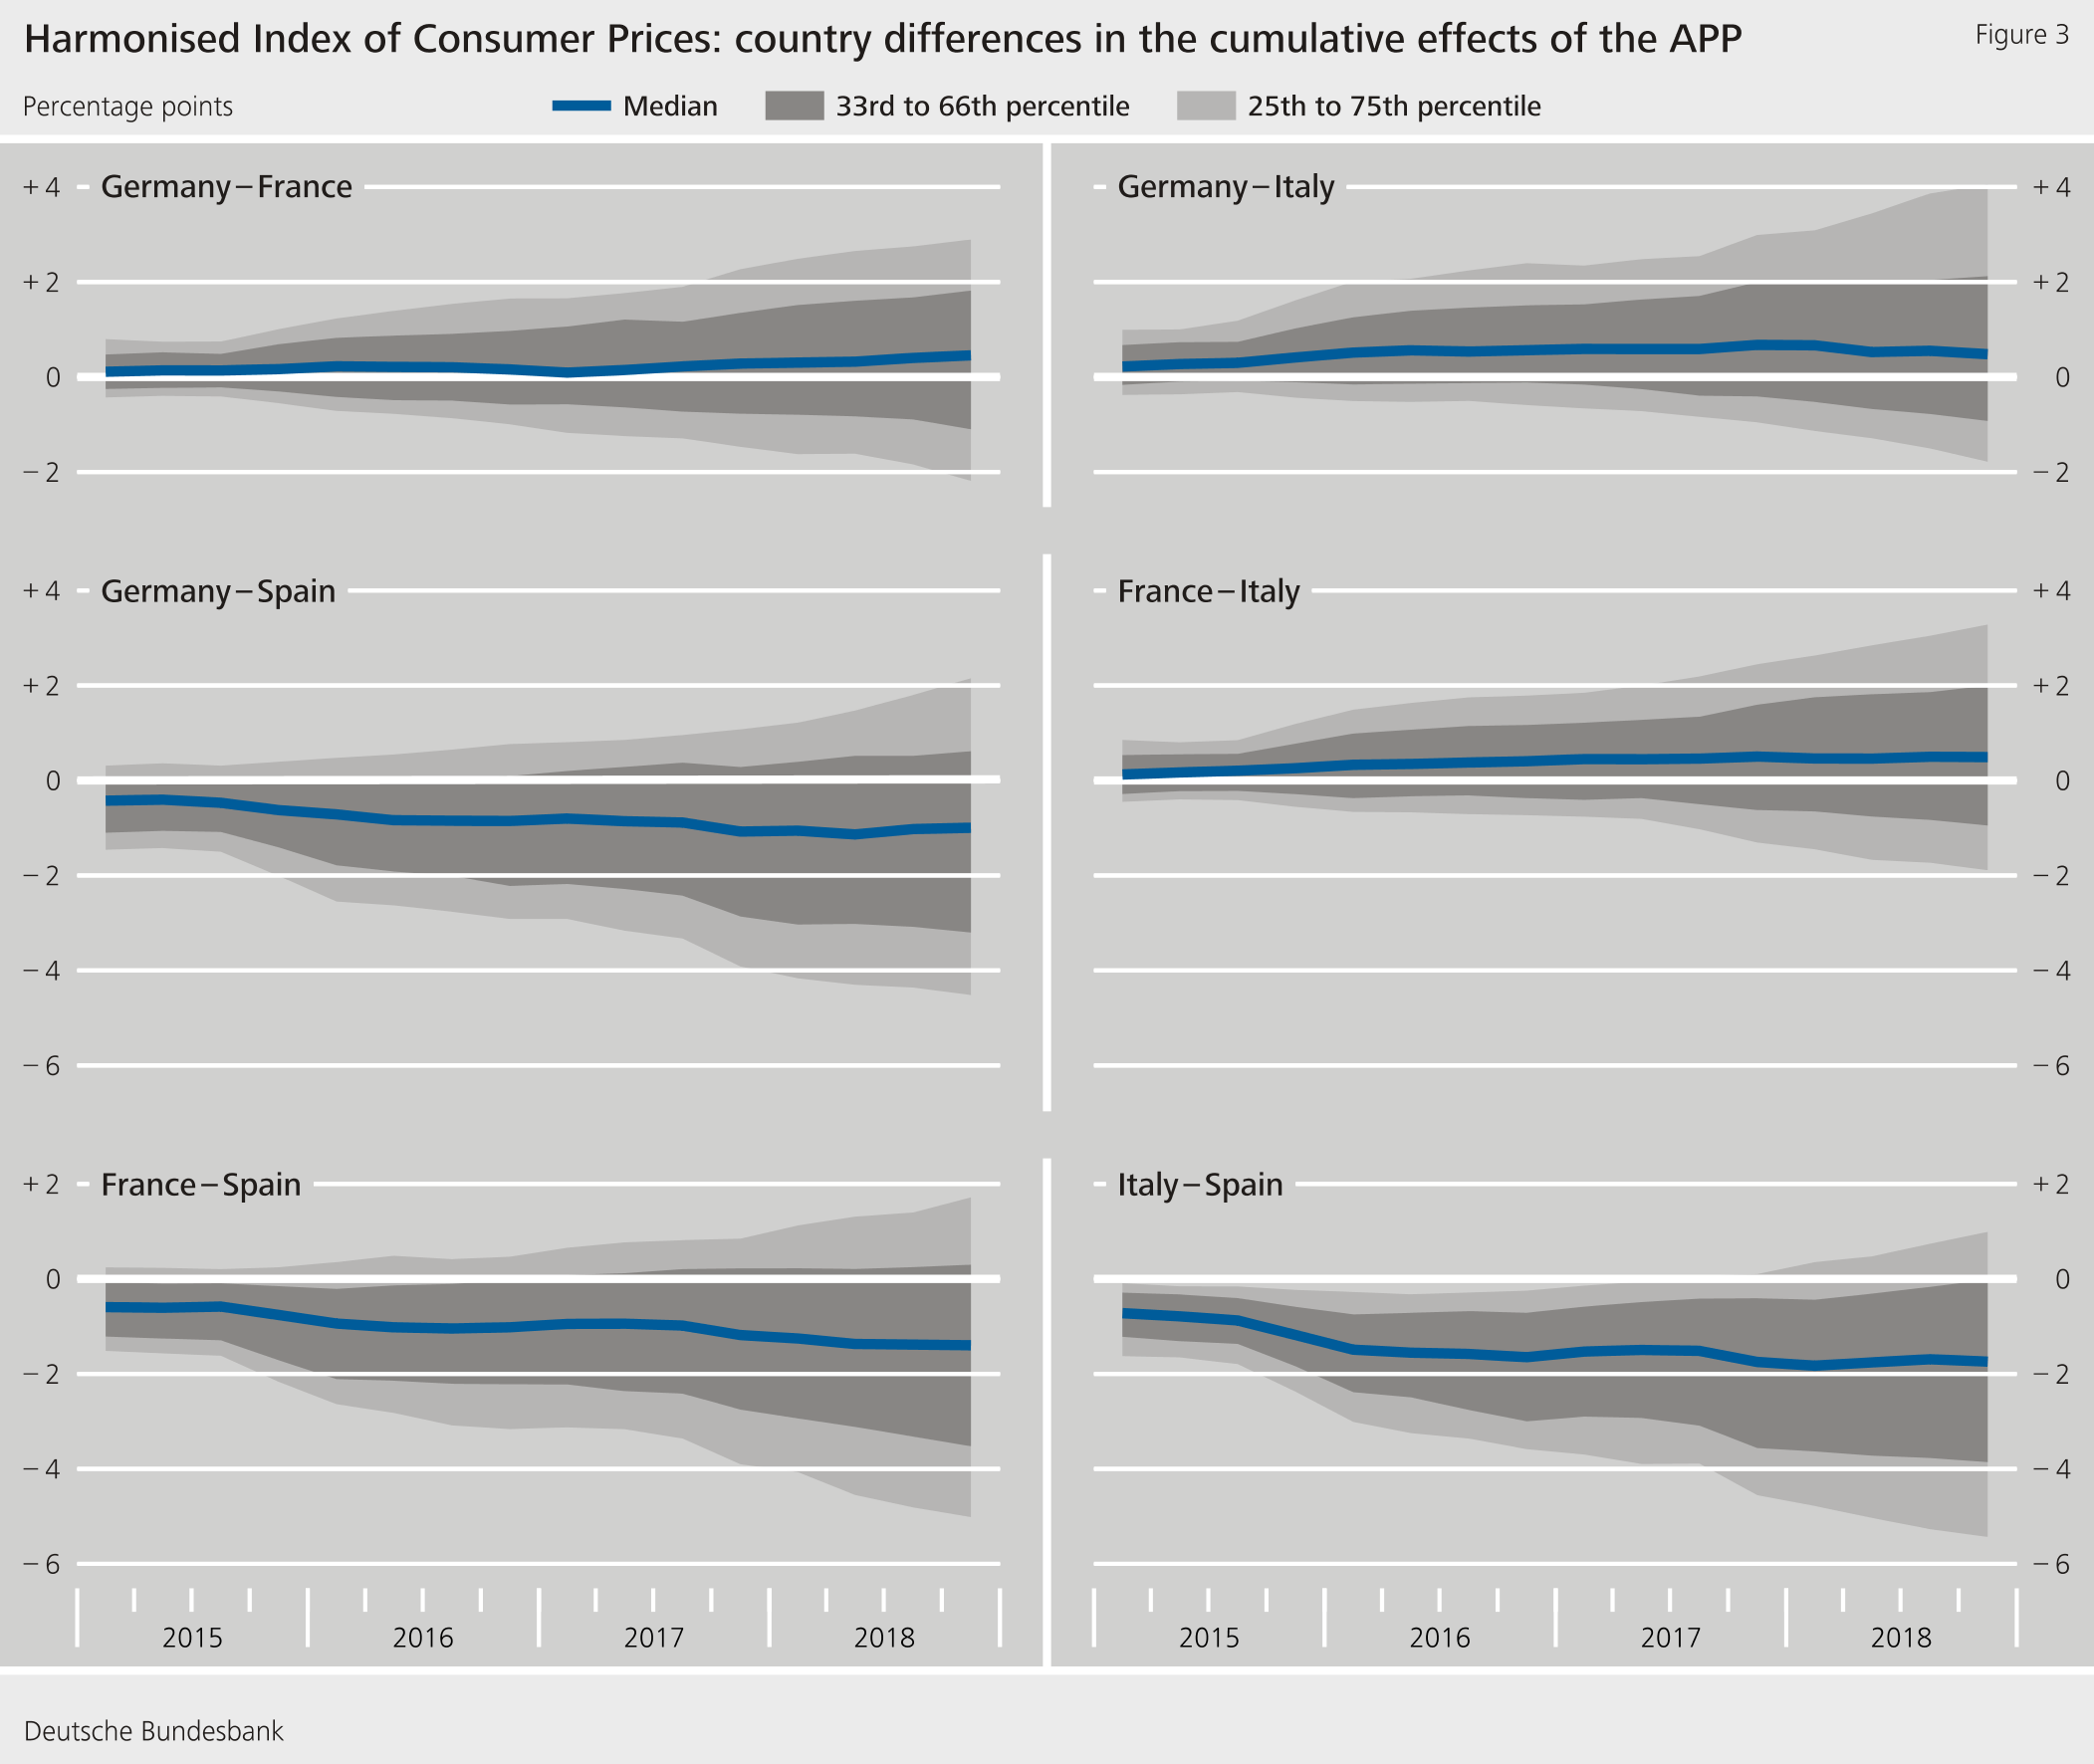 Figure 3: Harmonised Index of Consumer Prices: country differences in the cumulative effects of the APP